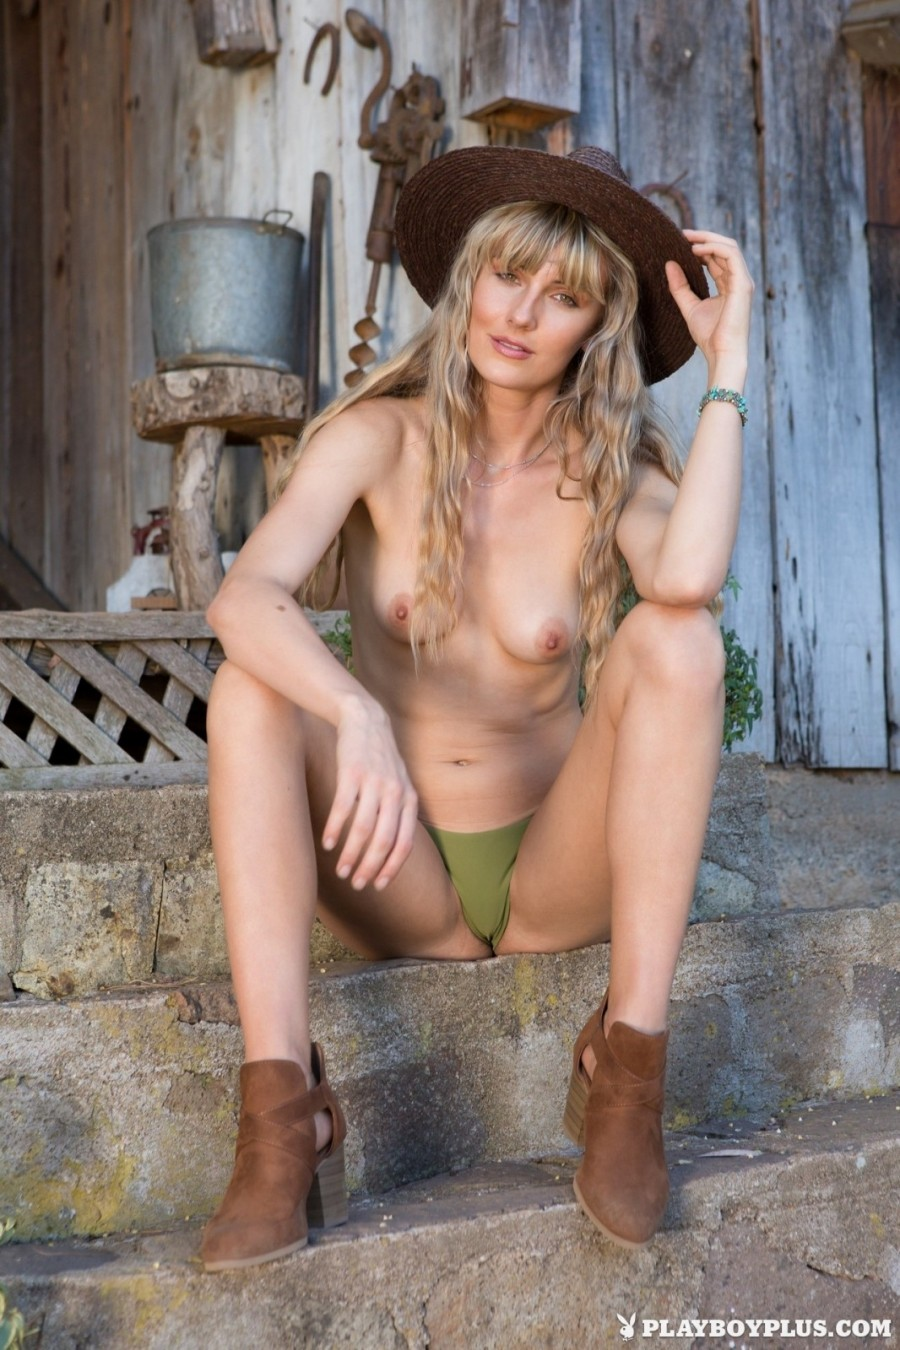 A country girl with a tight naked body